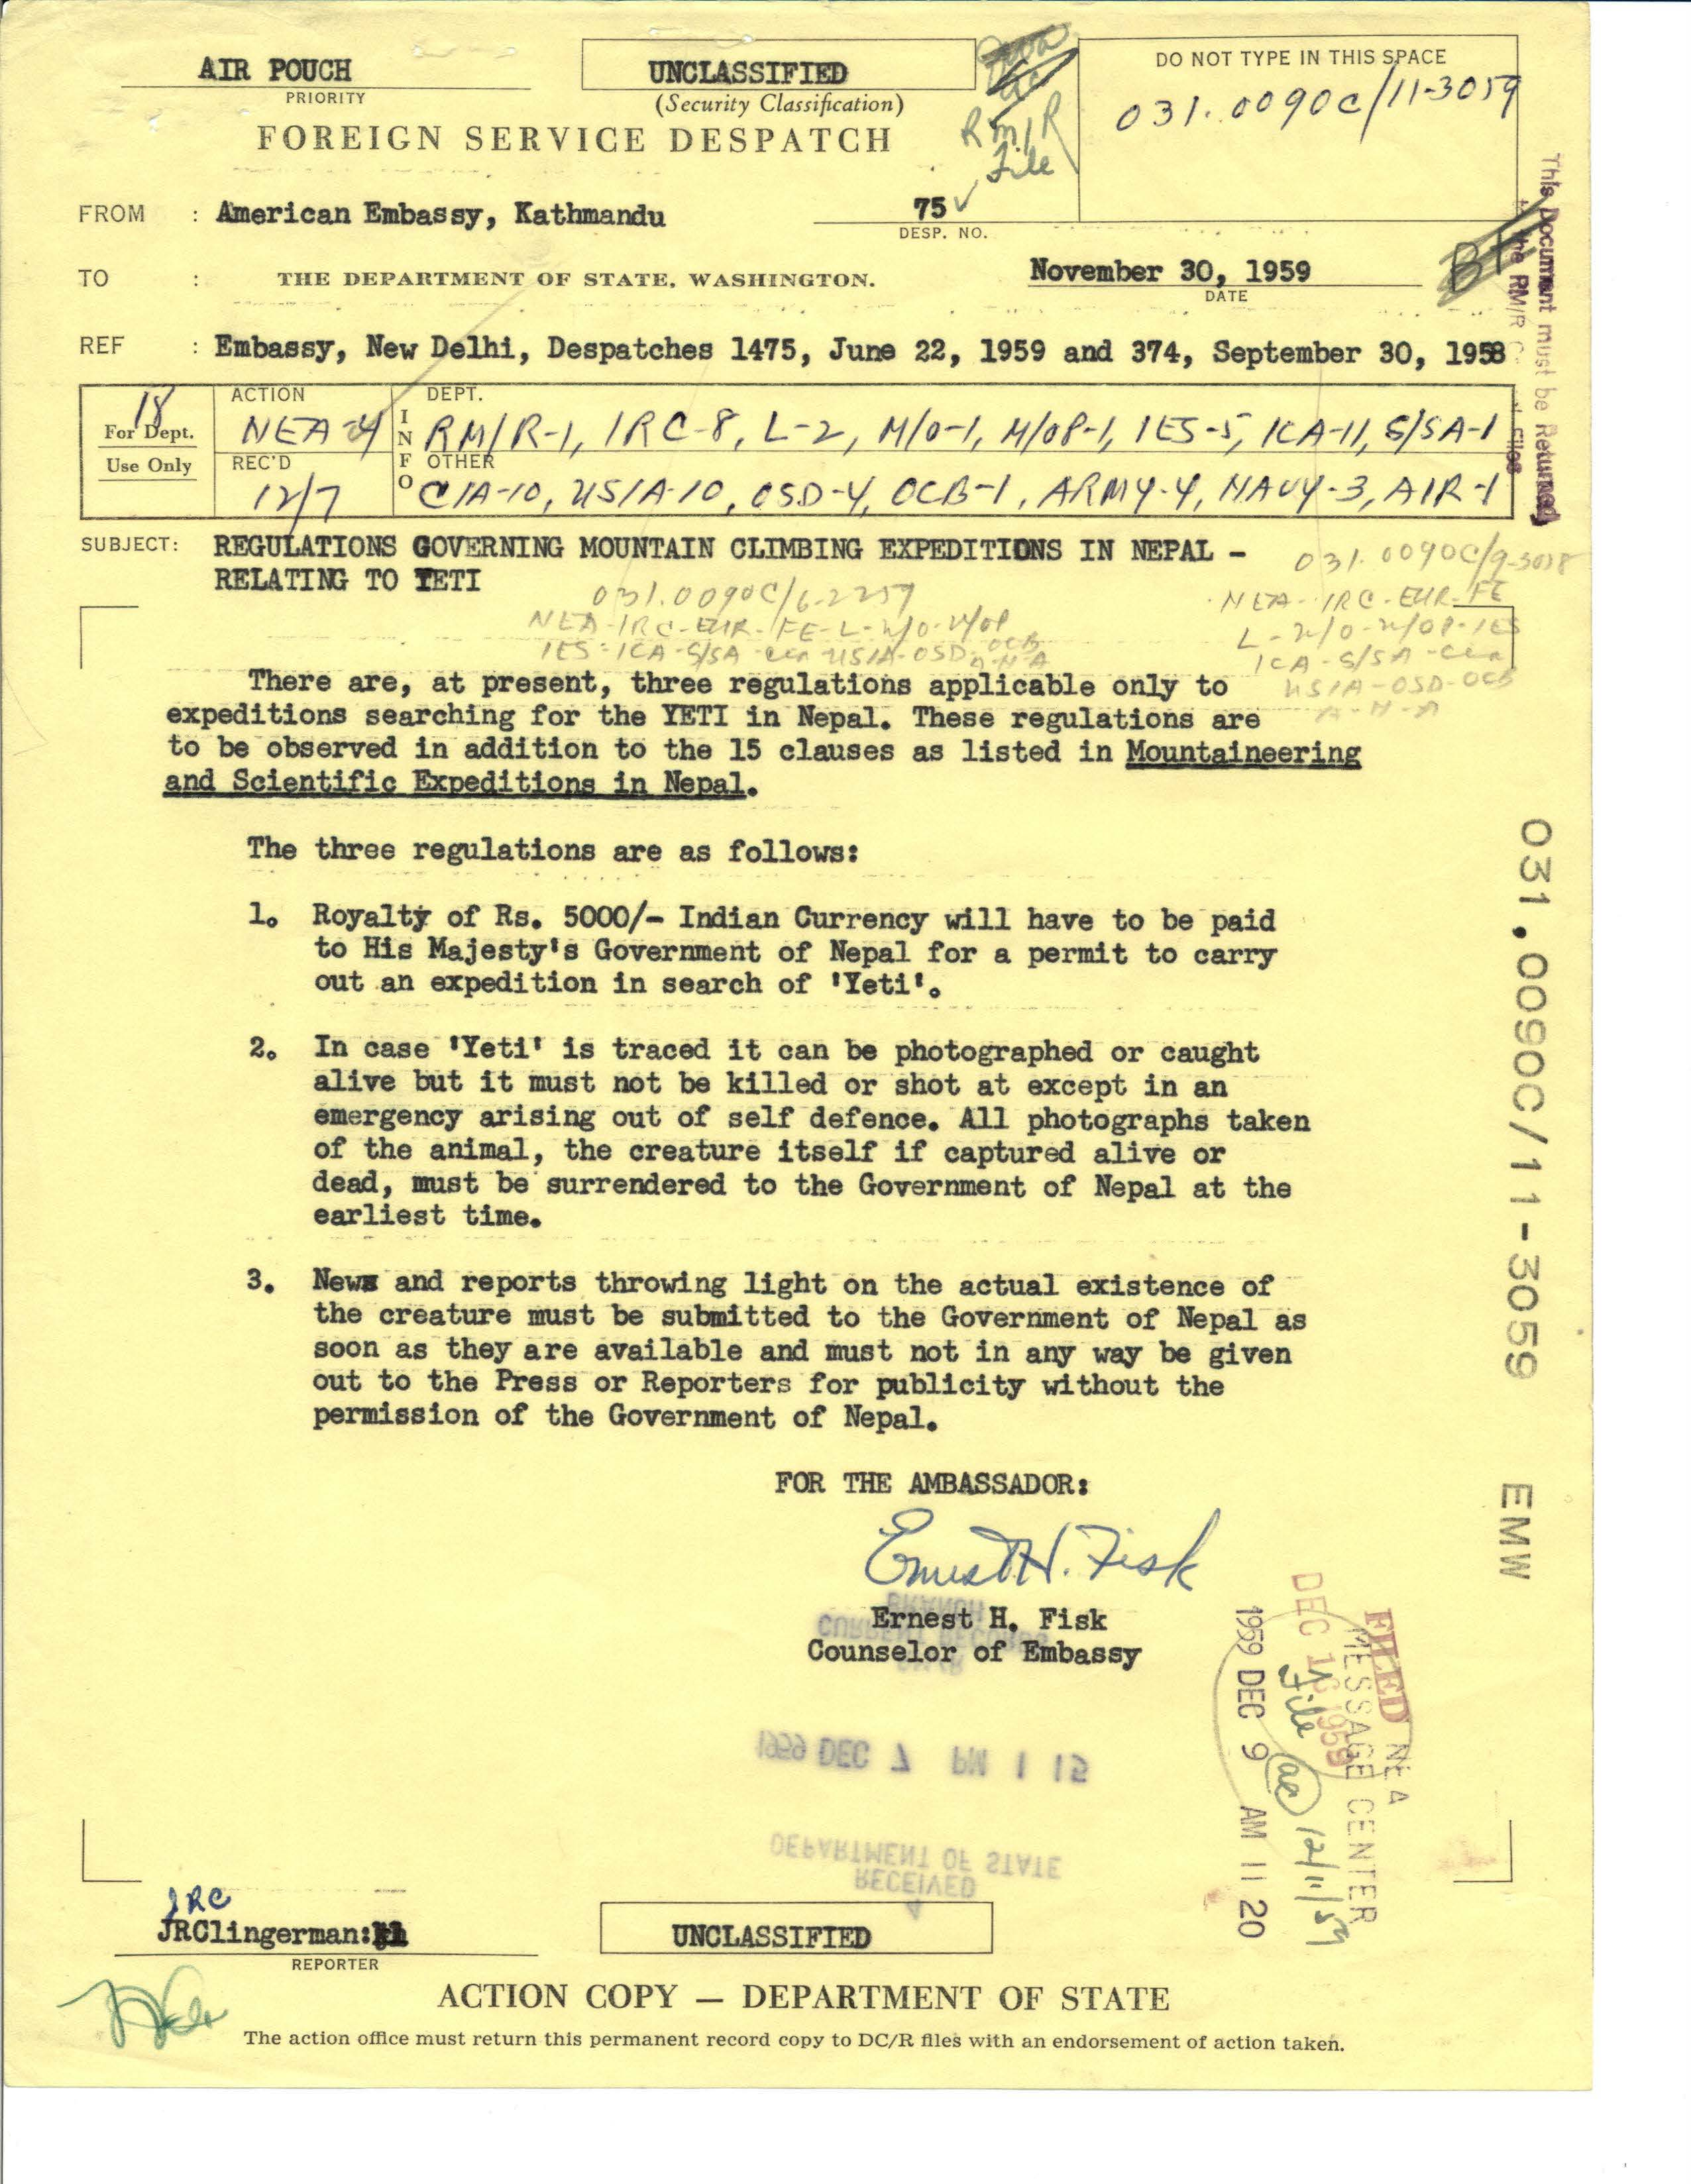 Foreign Service Despatch 75 from the American Embassy